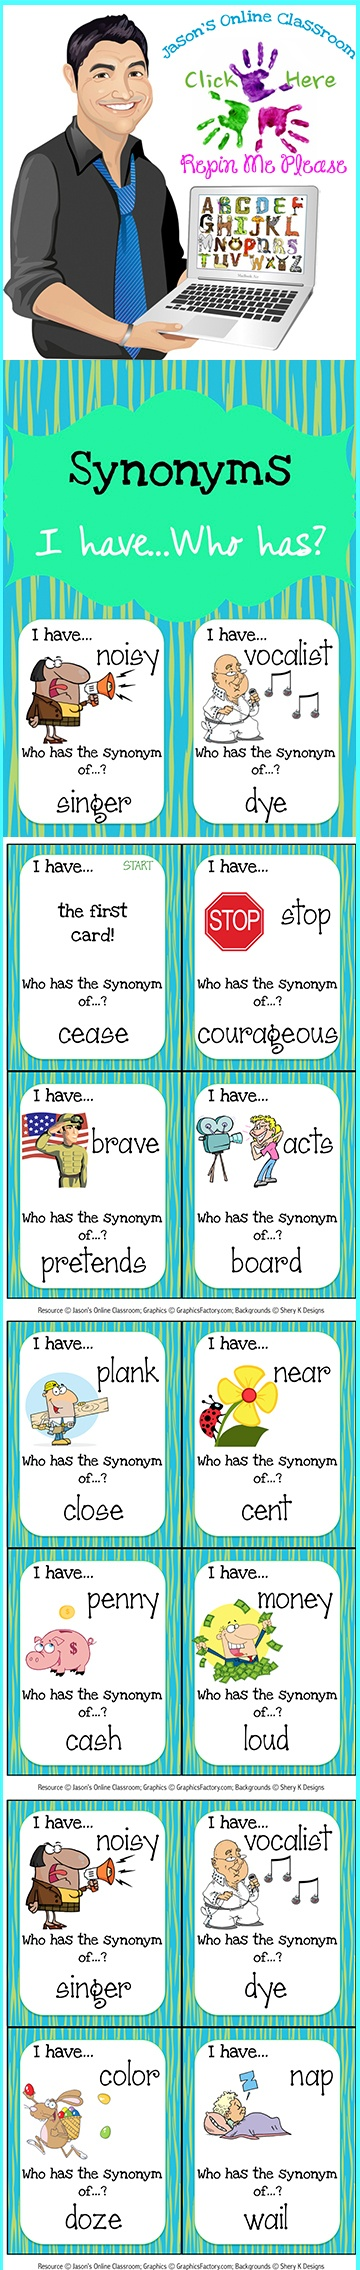 This synonyms card set can be used for small group, centers, morning warm-up, etc. They are intended to help students learn synonyms. There are a total of 44 synonyms word matches/cards included in this resource.